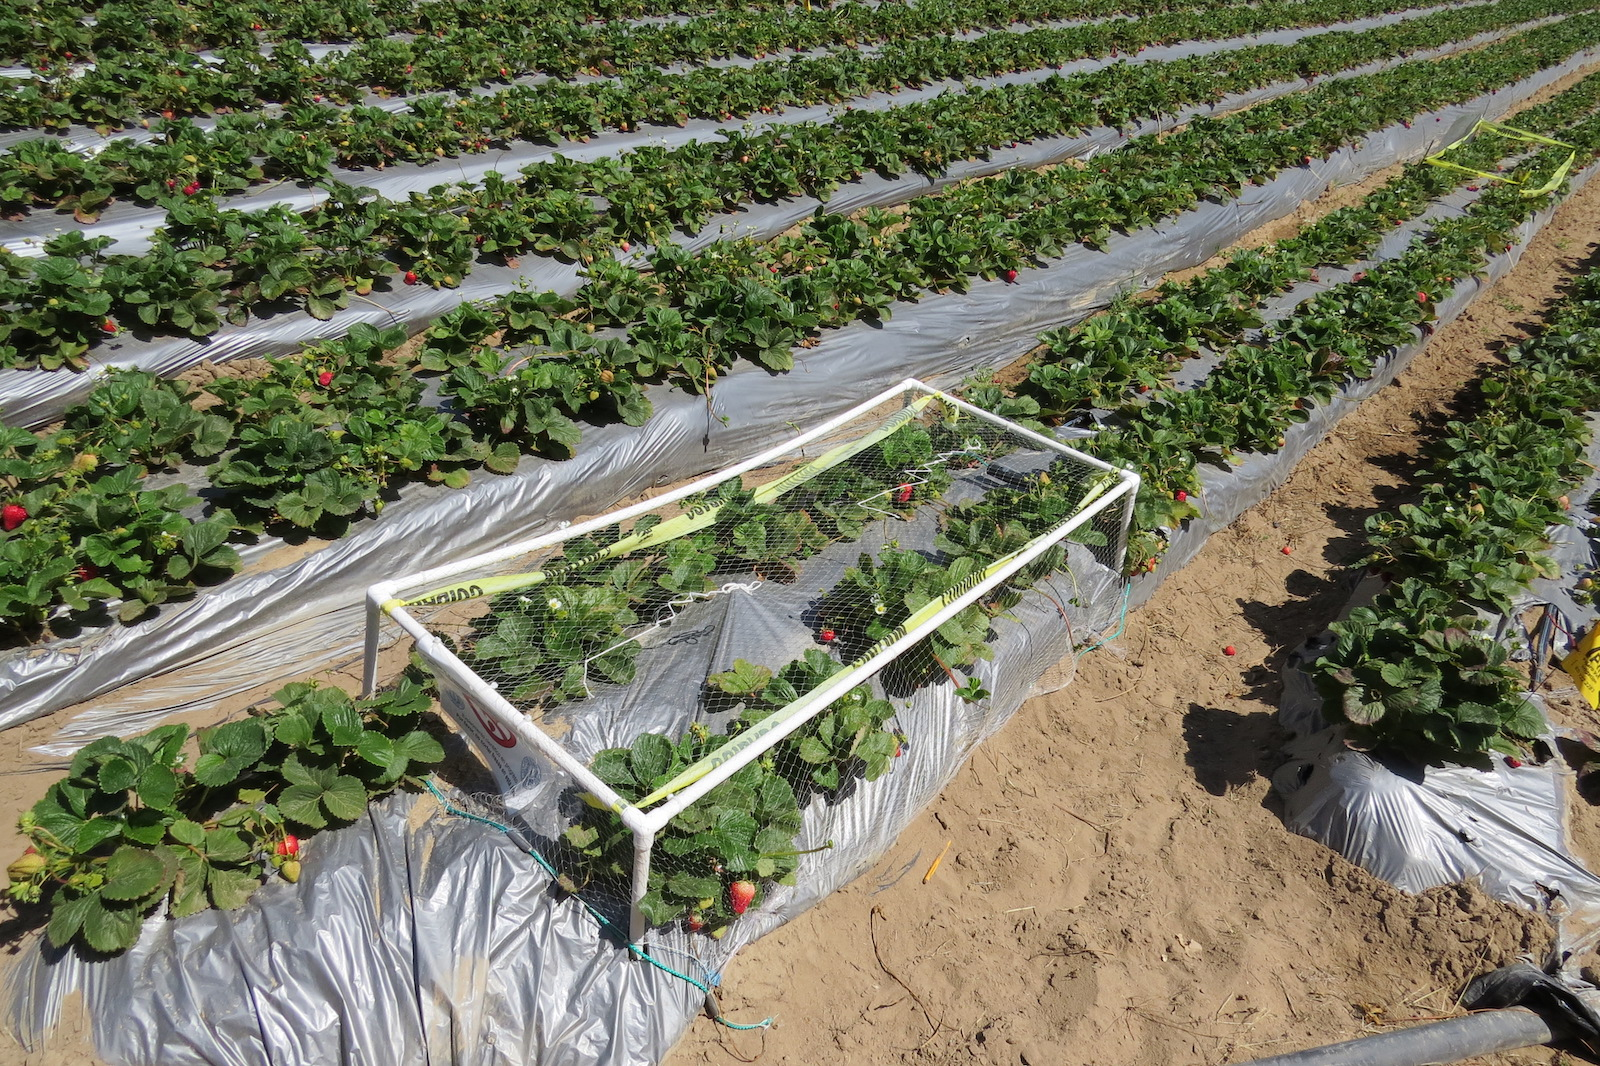 Cages in a strawberry field as part of an experiment